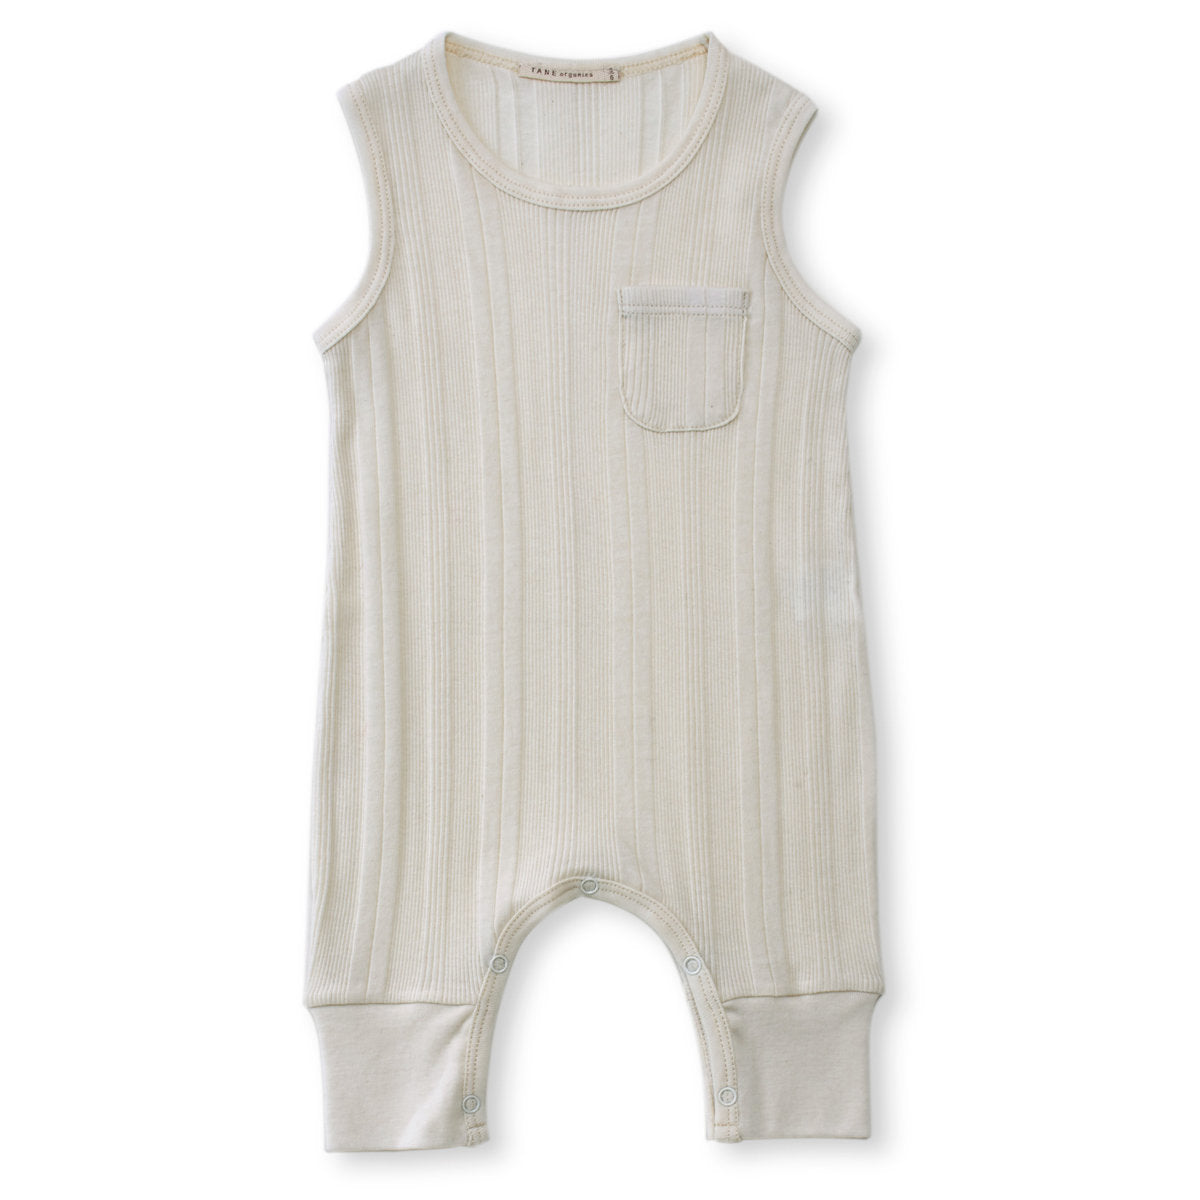 Tane Organics One Pocket Baby Sleeveless Romper in Ecru | BIEN BIEN